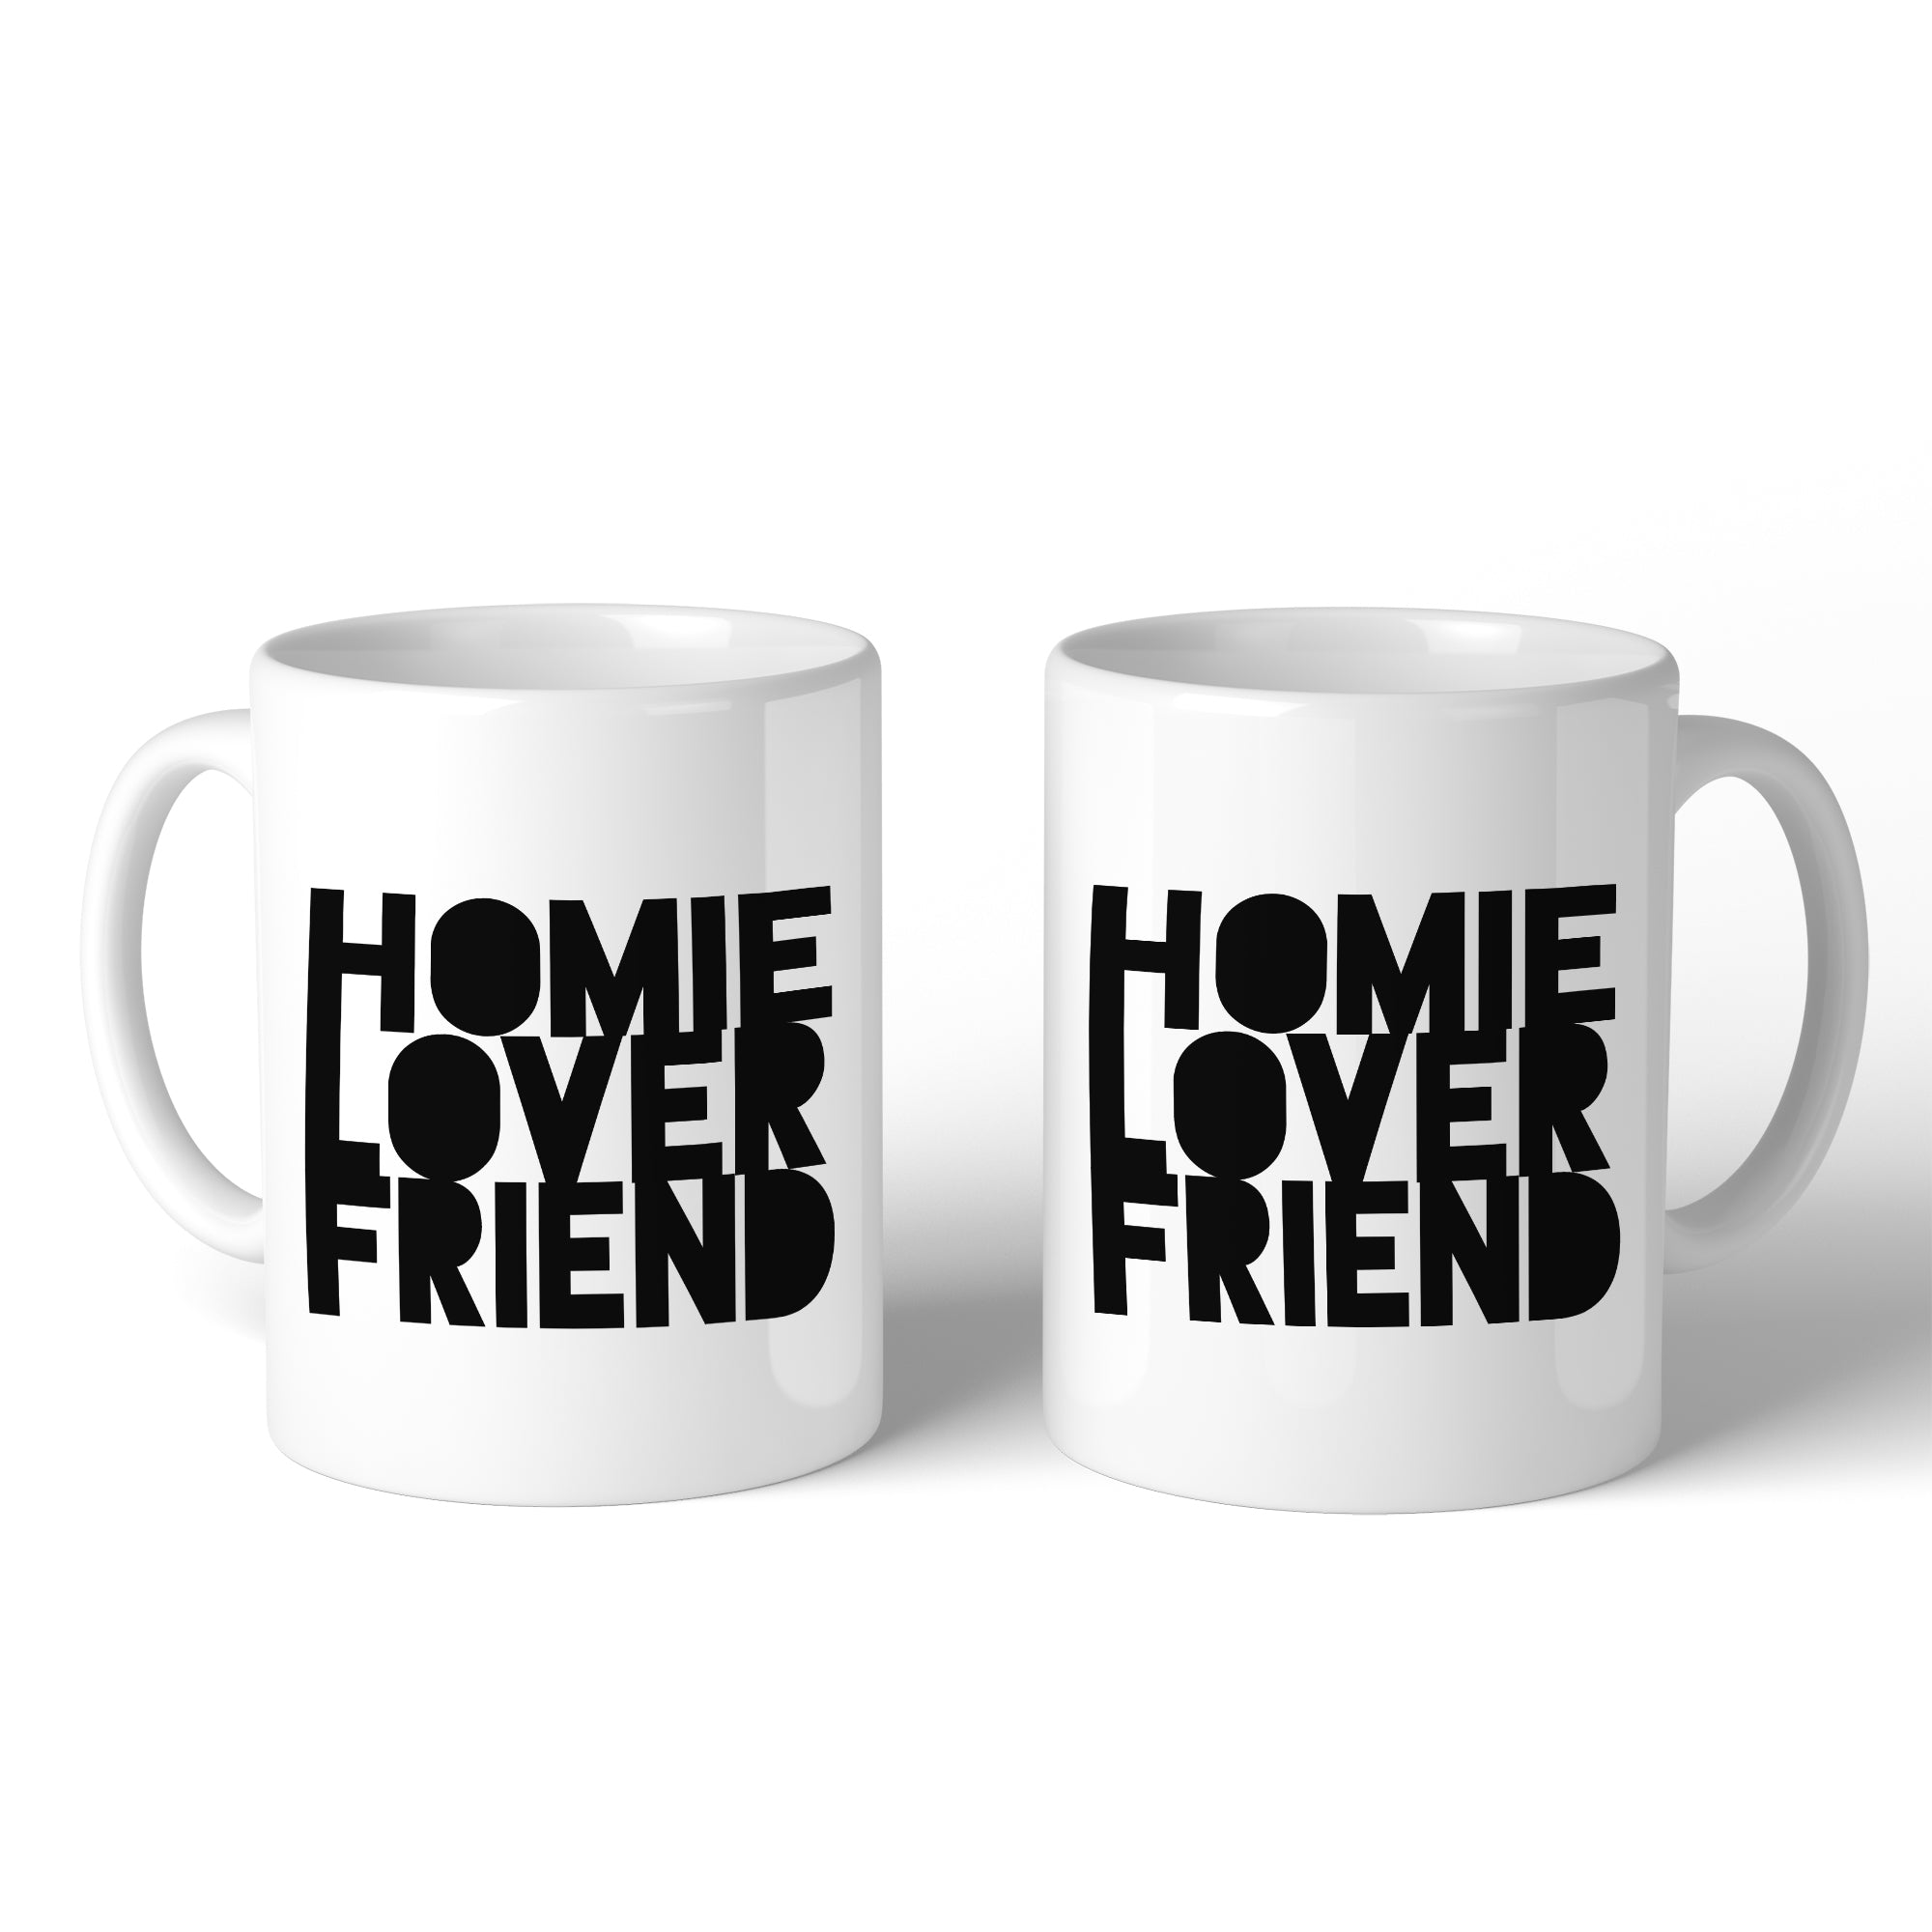 Homie Lover Friend Matching Couple White Mugs